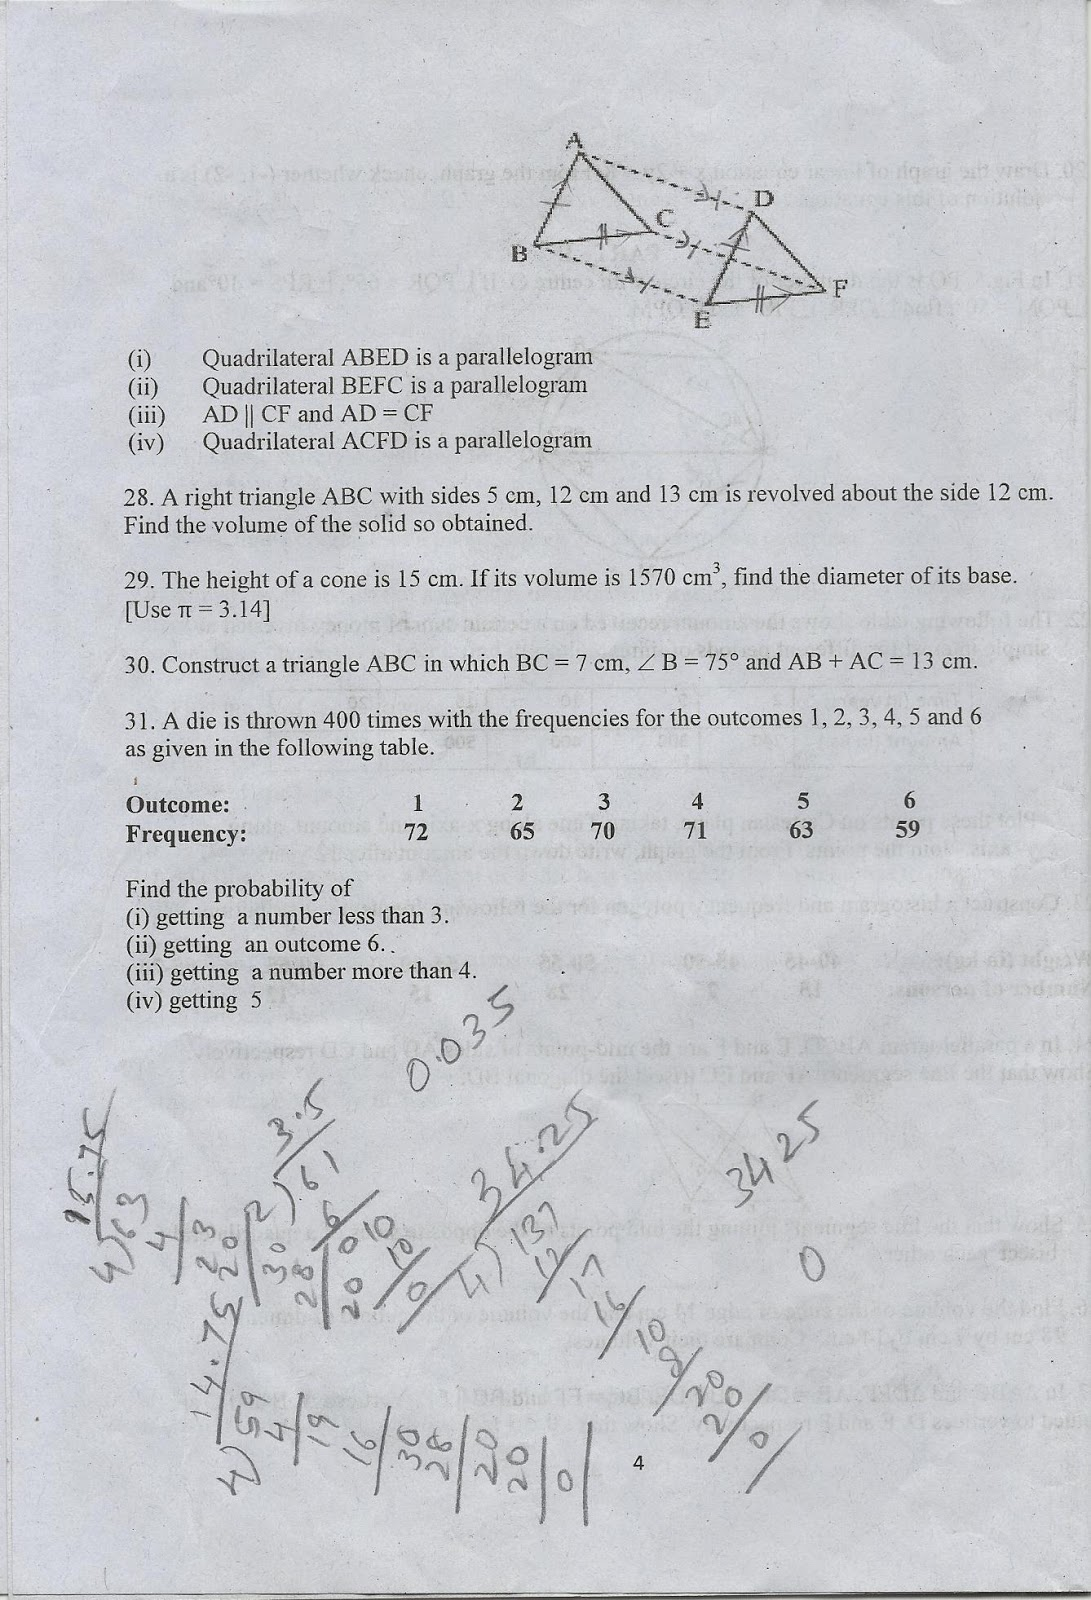 CBSE QUESTION PAPERS: CBSE MATHS CLASS 9 SA 2 REAL